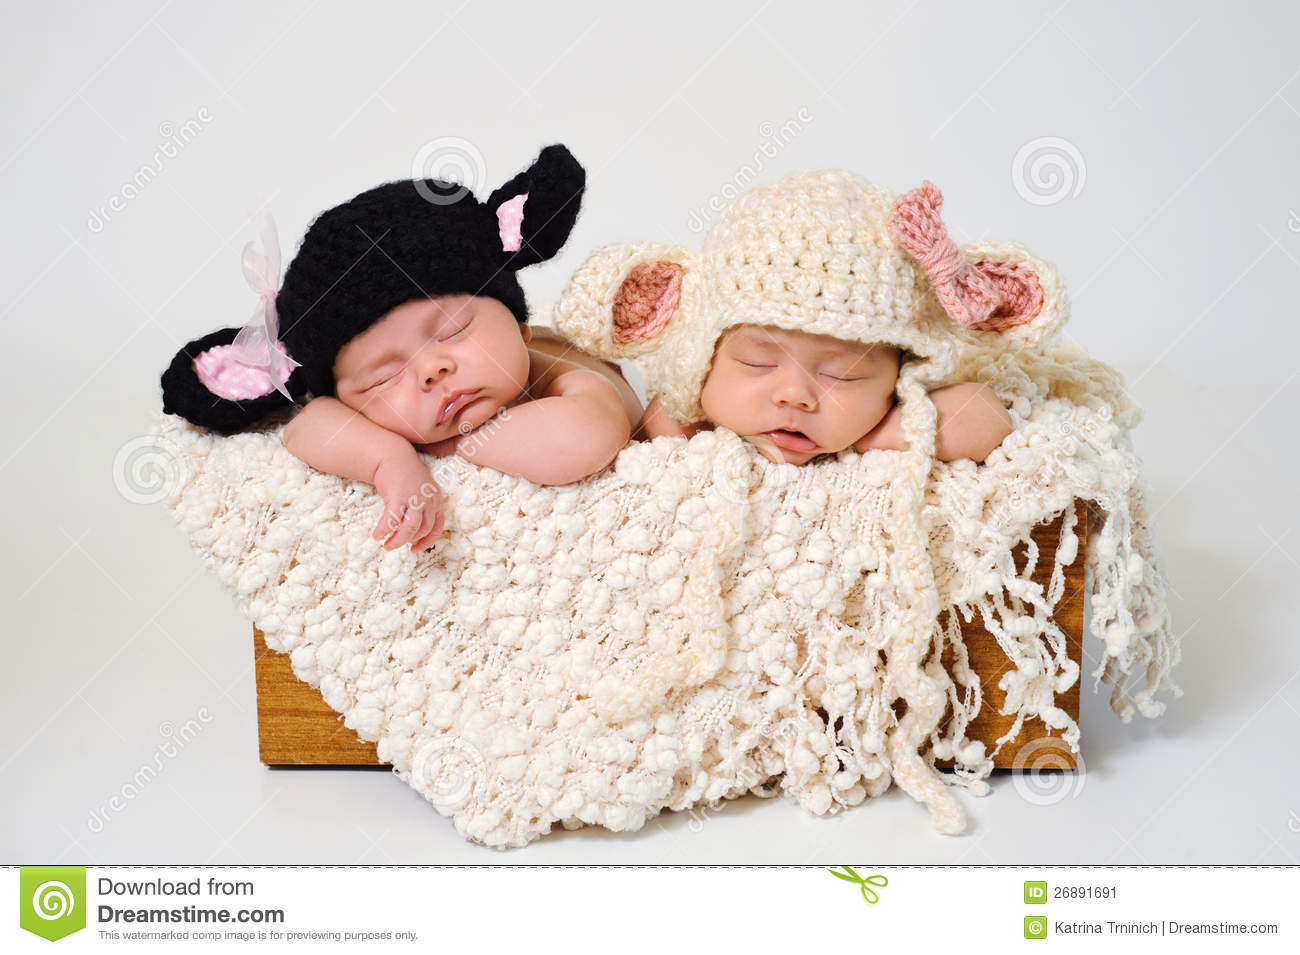 Sleeping fraternal twin newborn baby girls wearing crocheted black lamb and white lamb hats